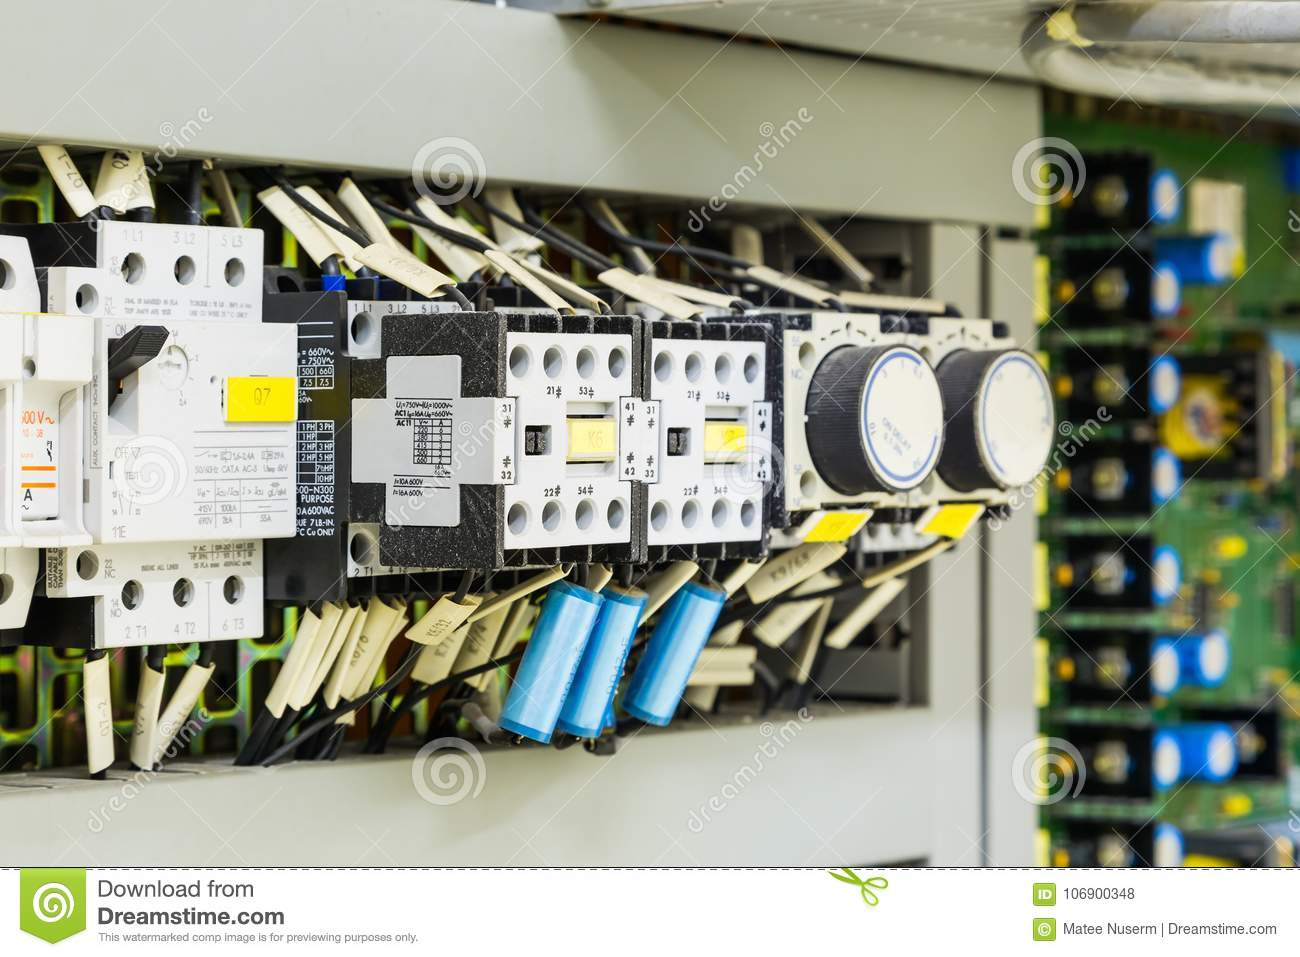 hight resolution of electrical control devices installed in control cubicle including magnetic contactors circuit breakers timer relays and etc